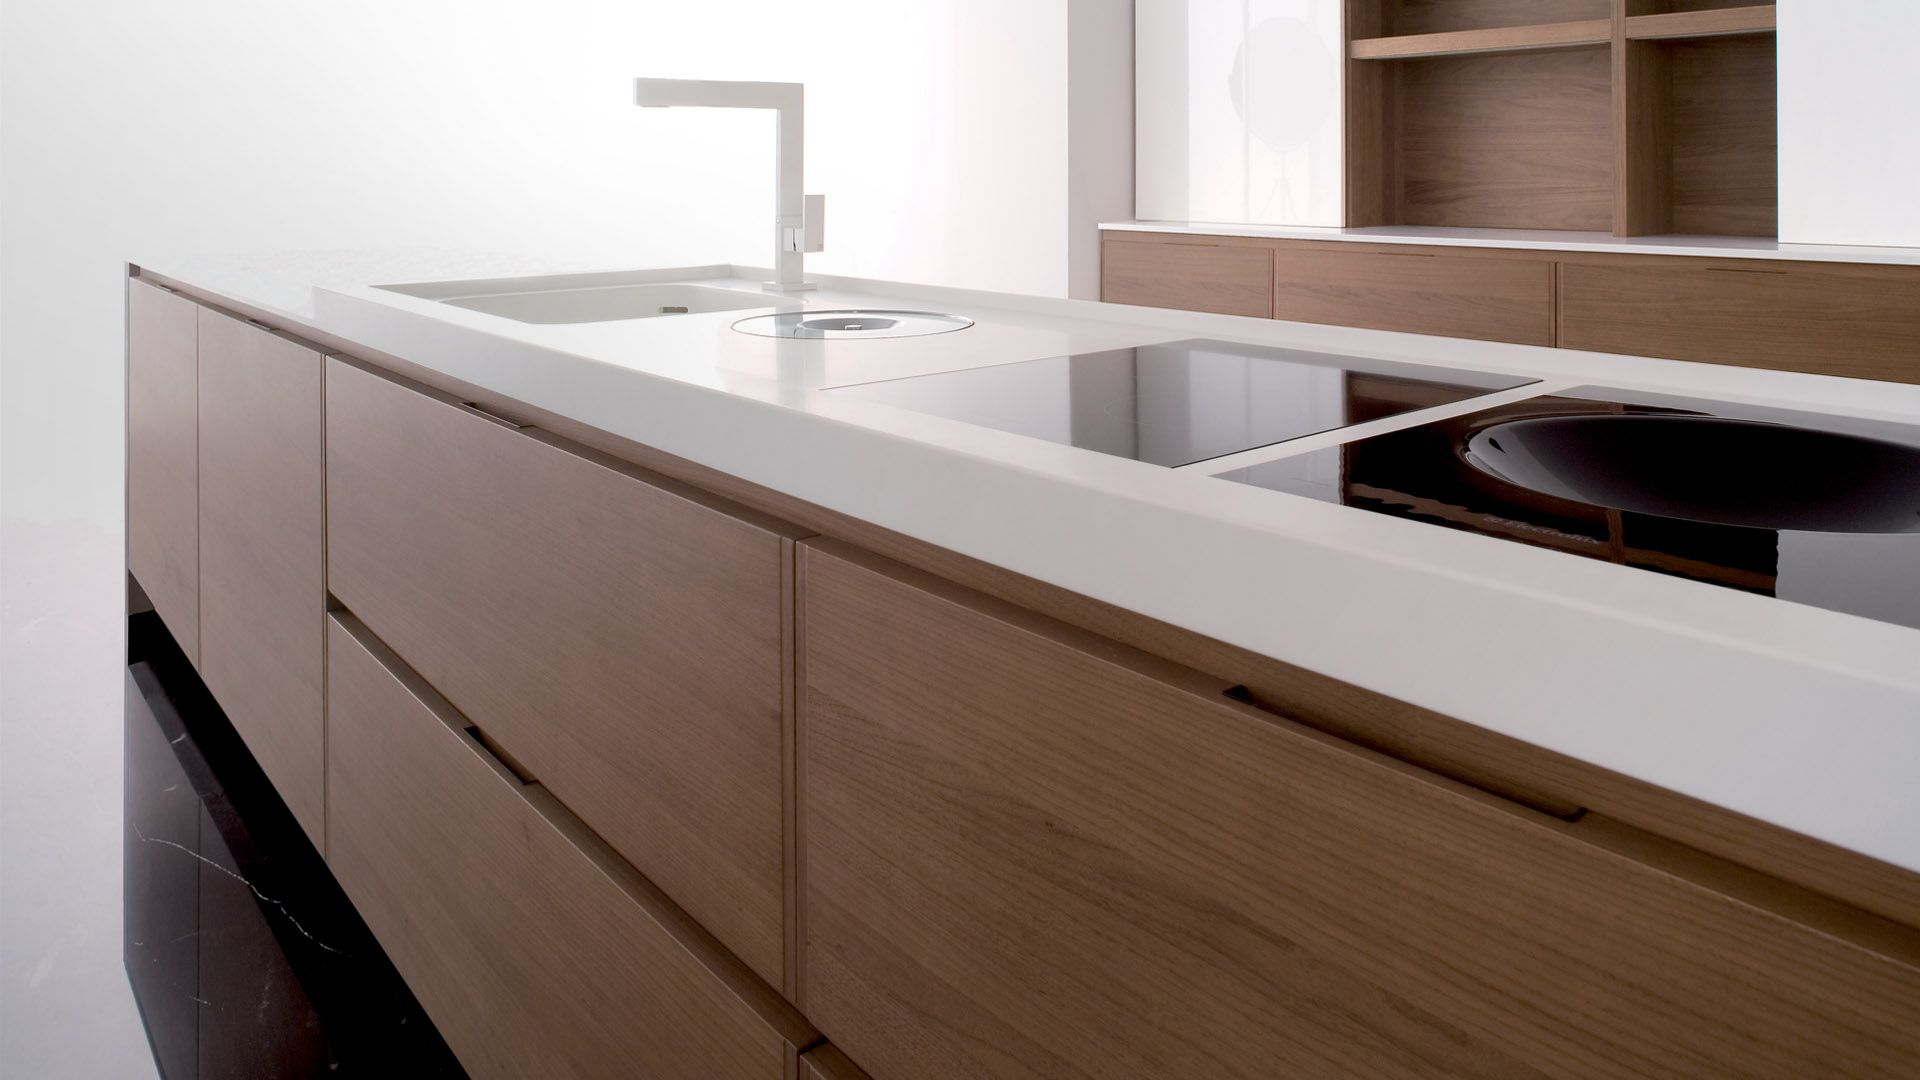 Fancy Luxurious Kitchen Design With Glacier White Corian Countertops Listed In Online Kitchen